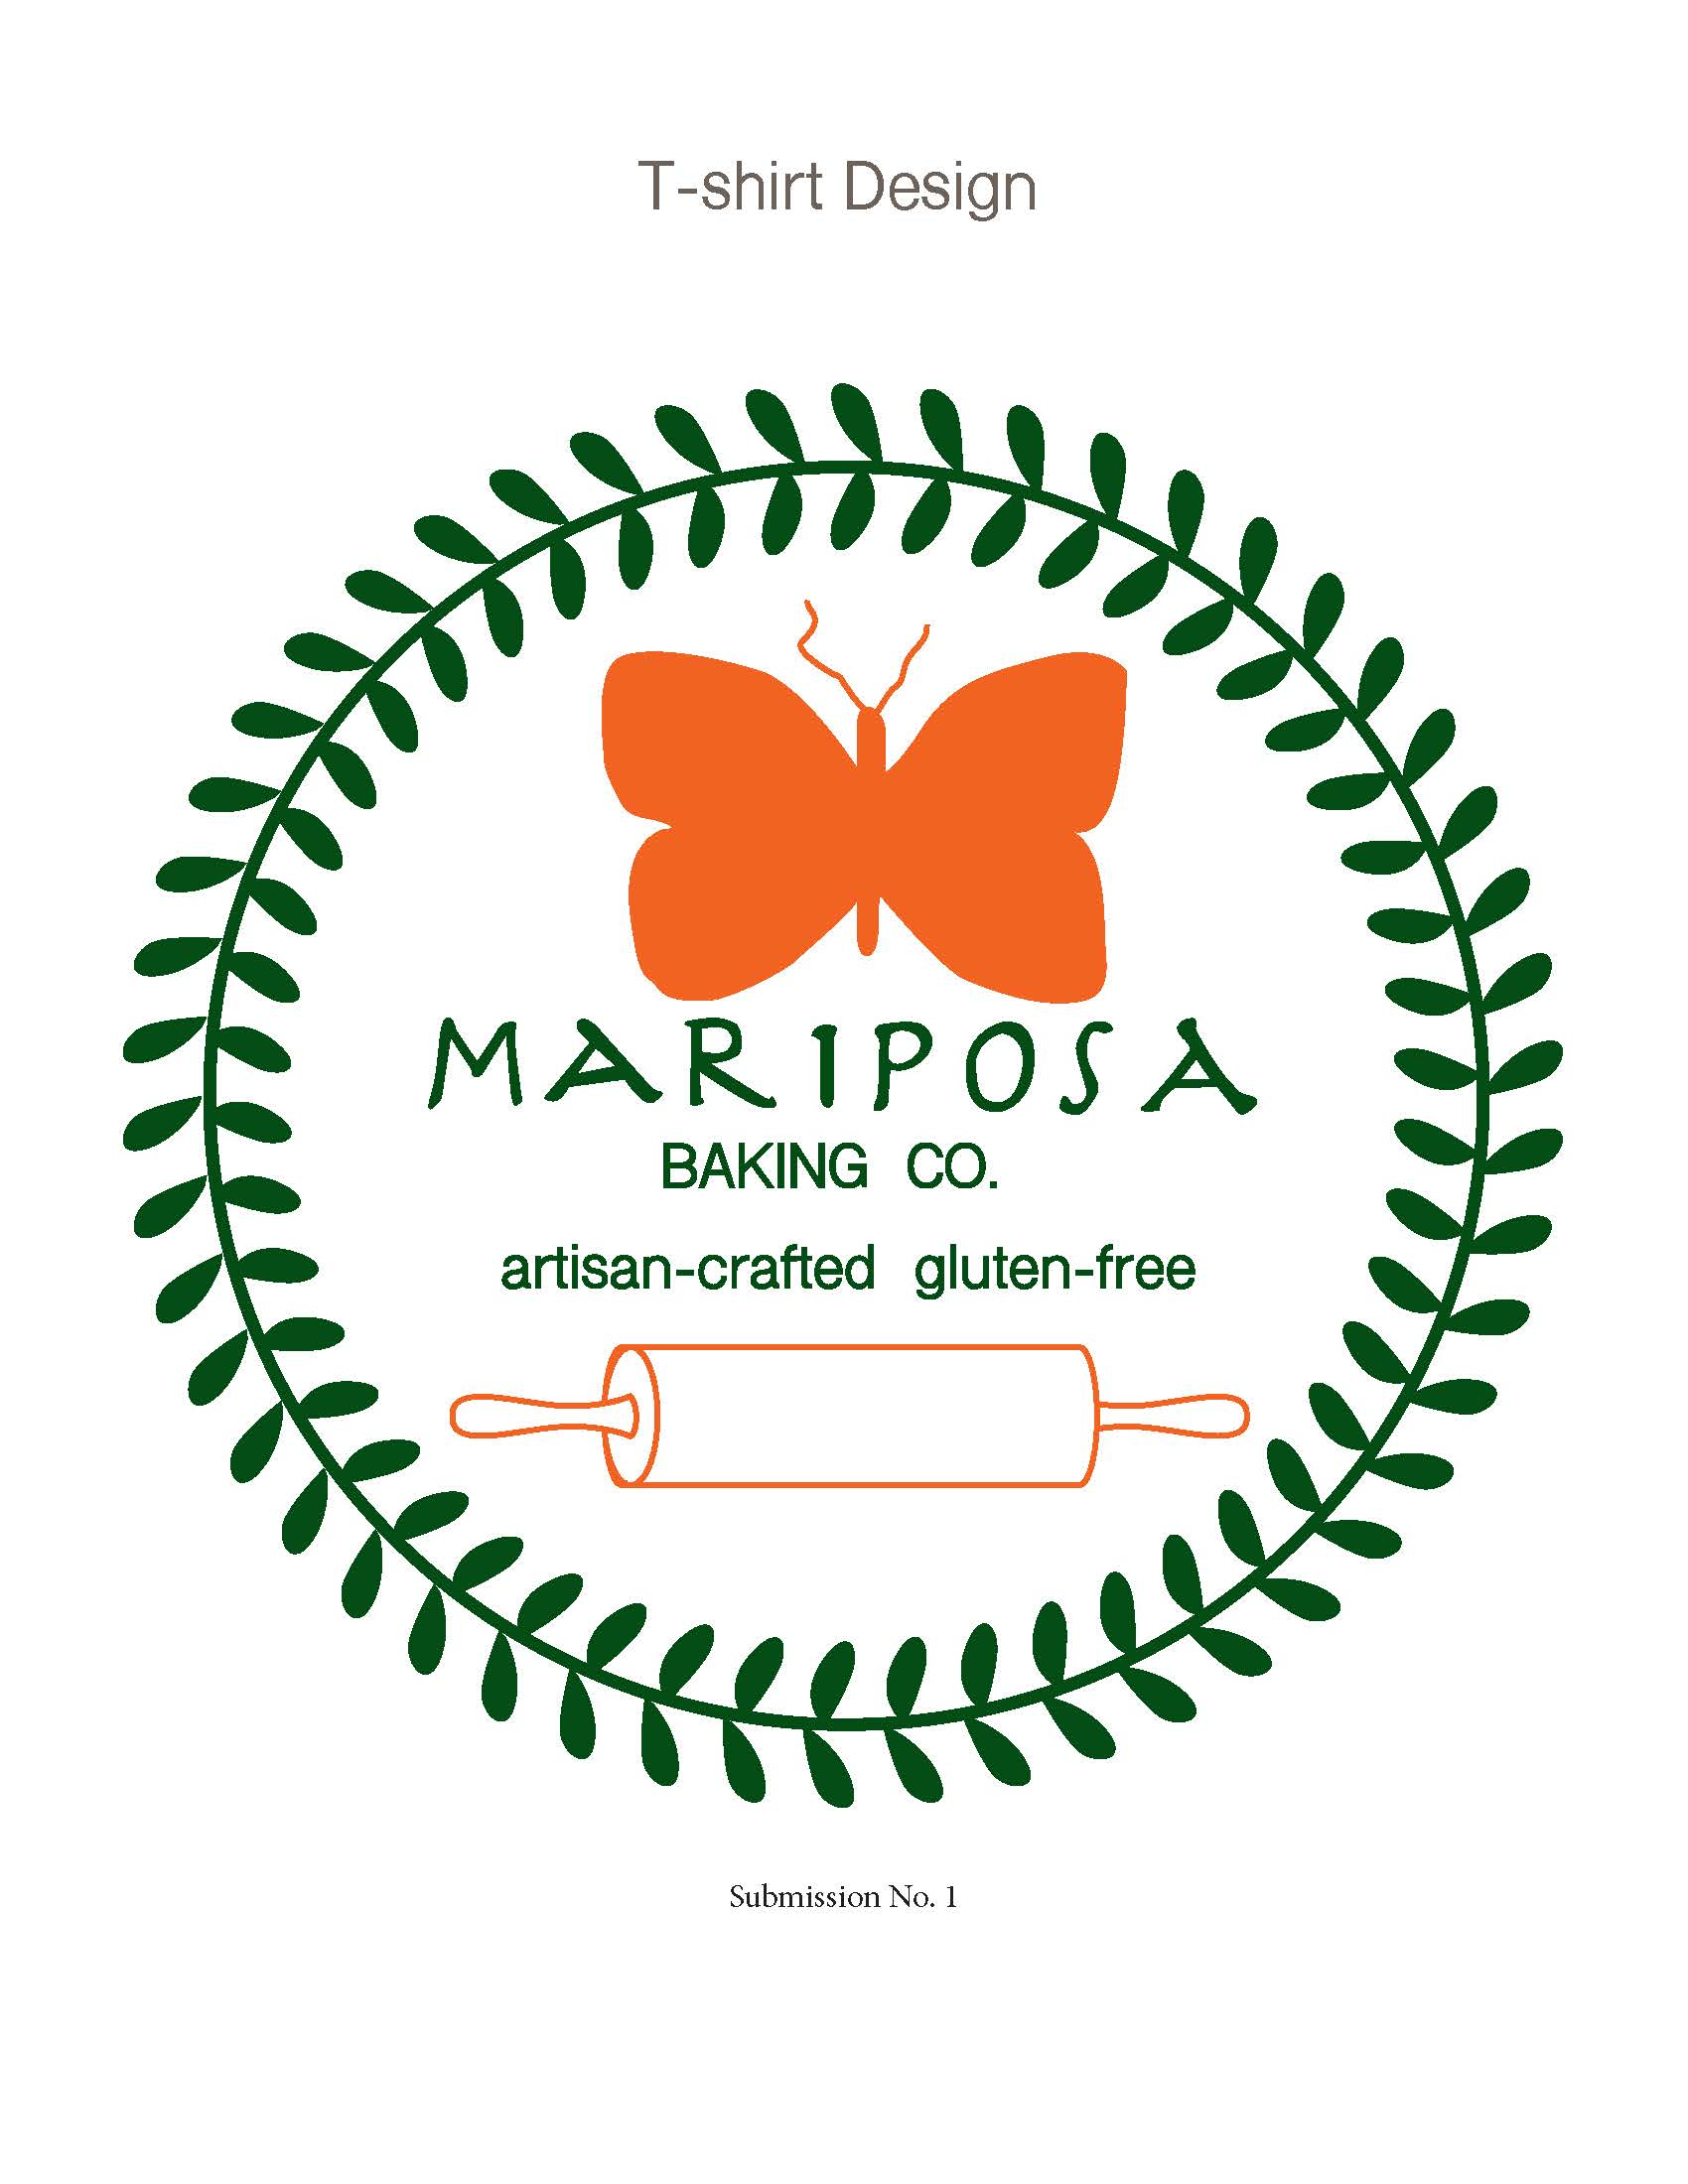 T-shirt design submission for Mariposa Bakery, Oakland, CA